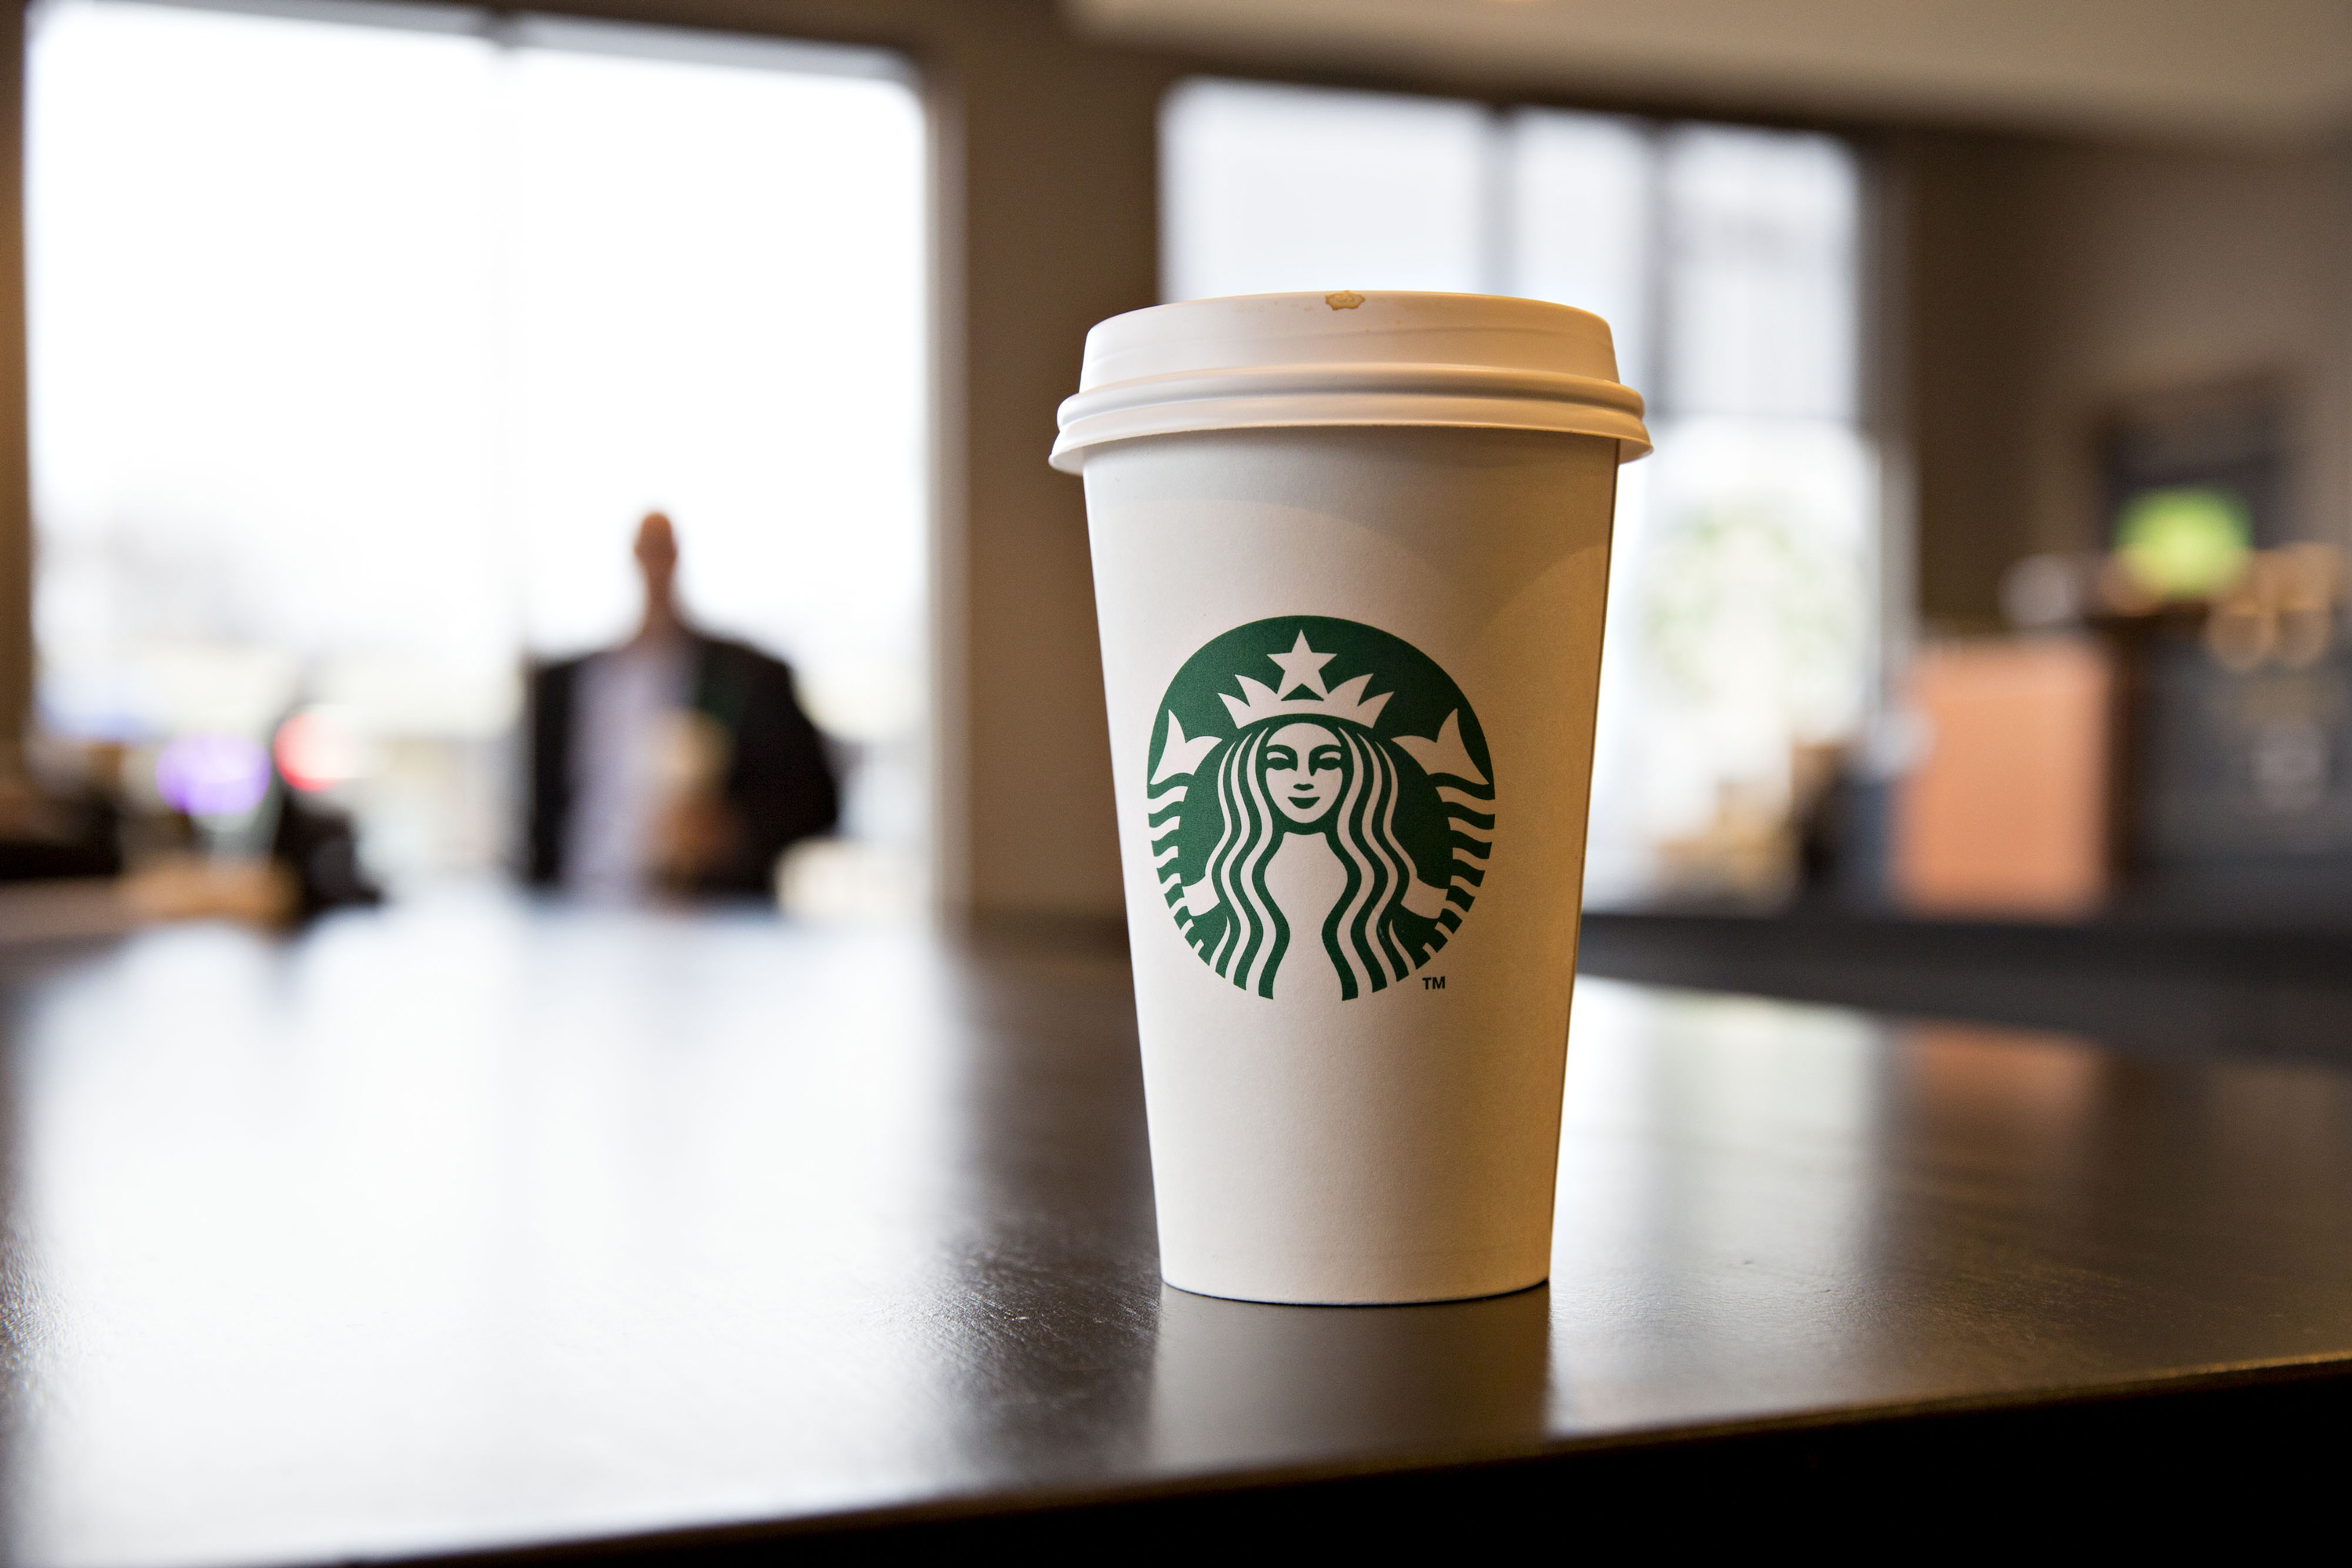 Starbucks is giving free coffee to health care workers this month